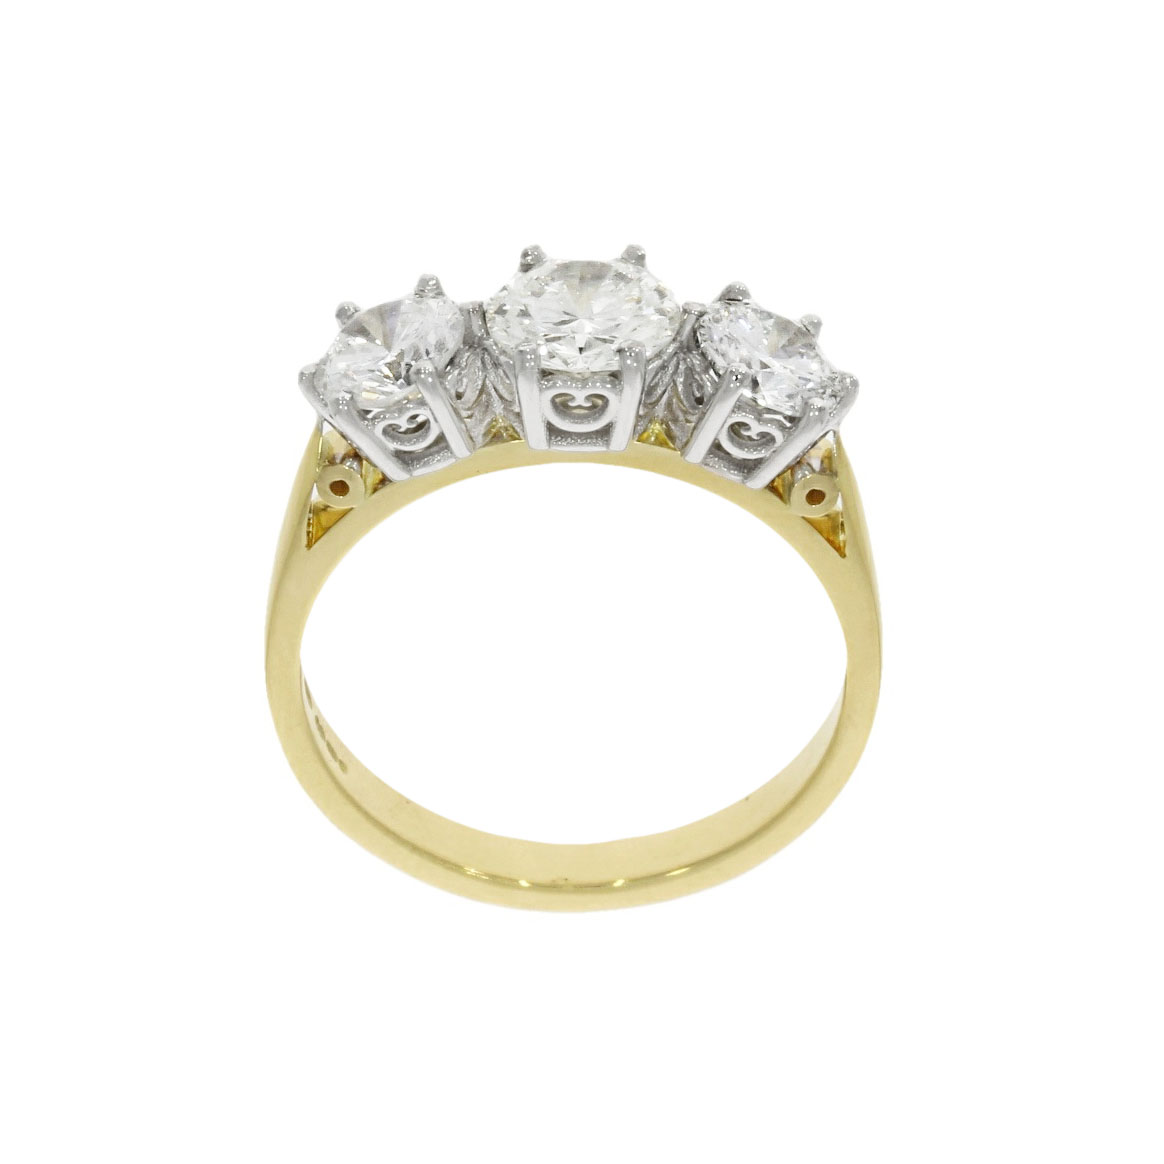 vintage style anitque updated remodelled diamond engagement ring 3 stone bath bristol uk